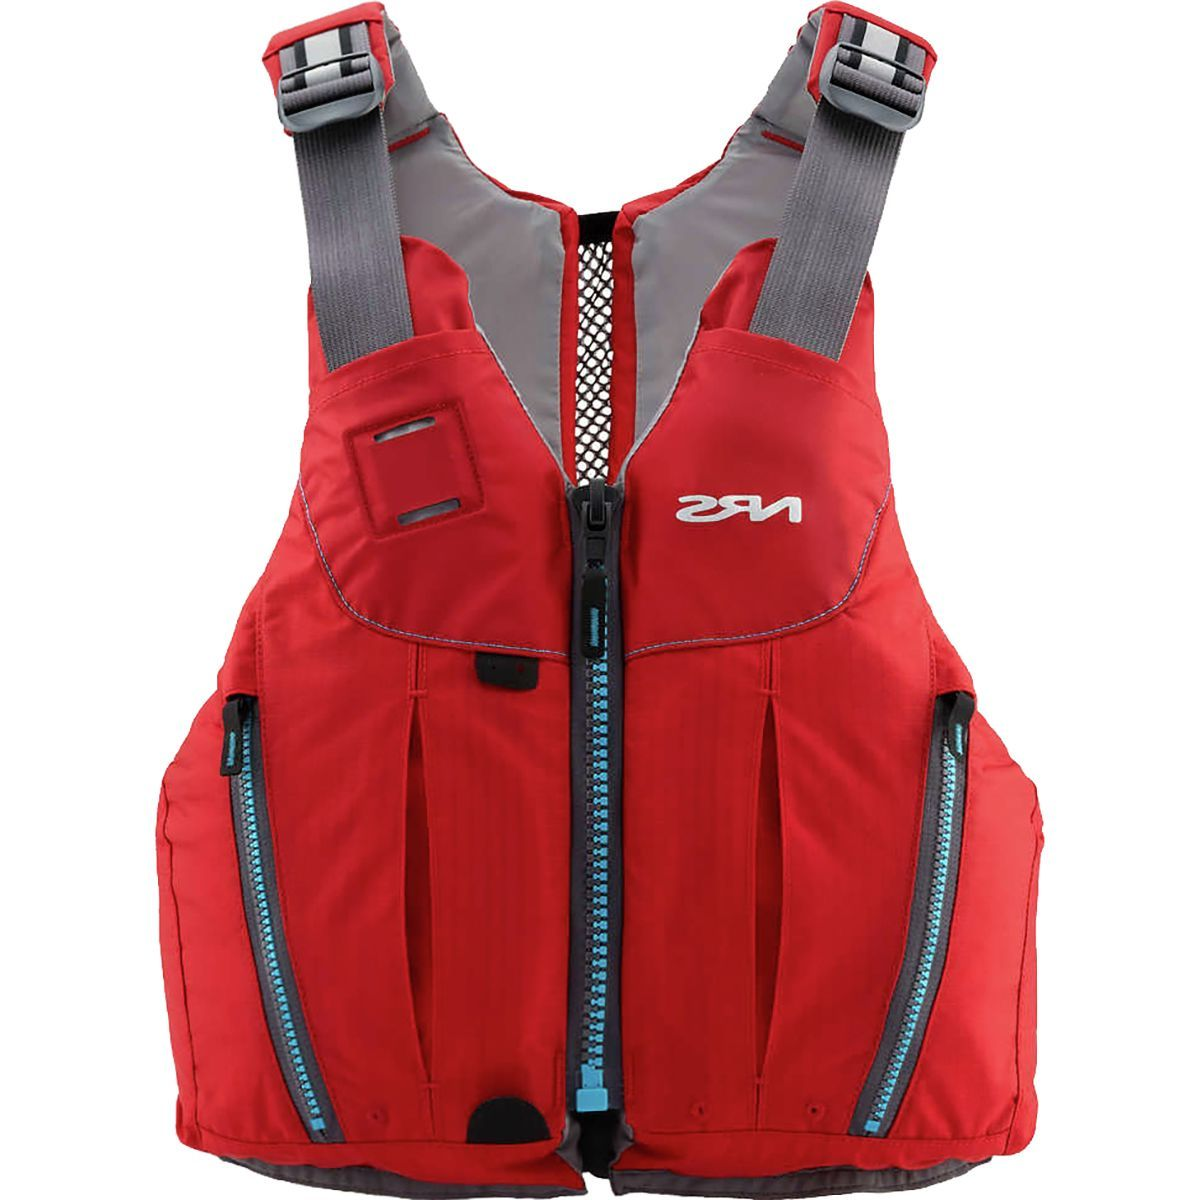 NRS Oso Personal Flotation Device - Men's